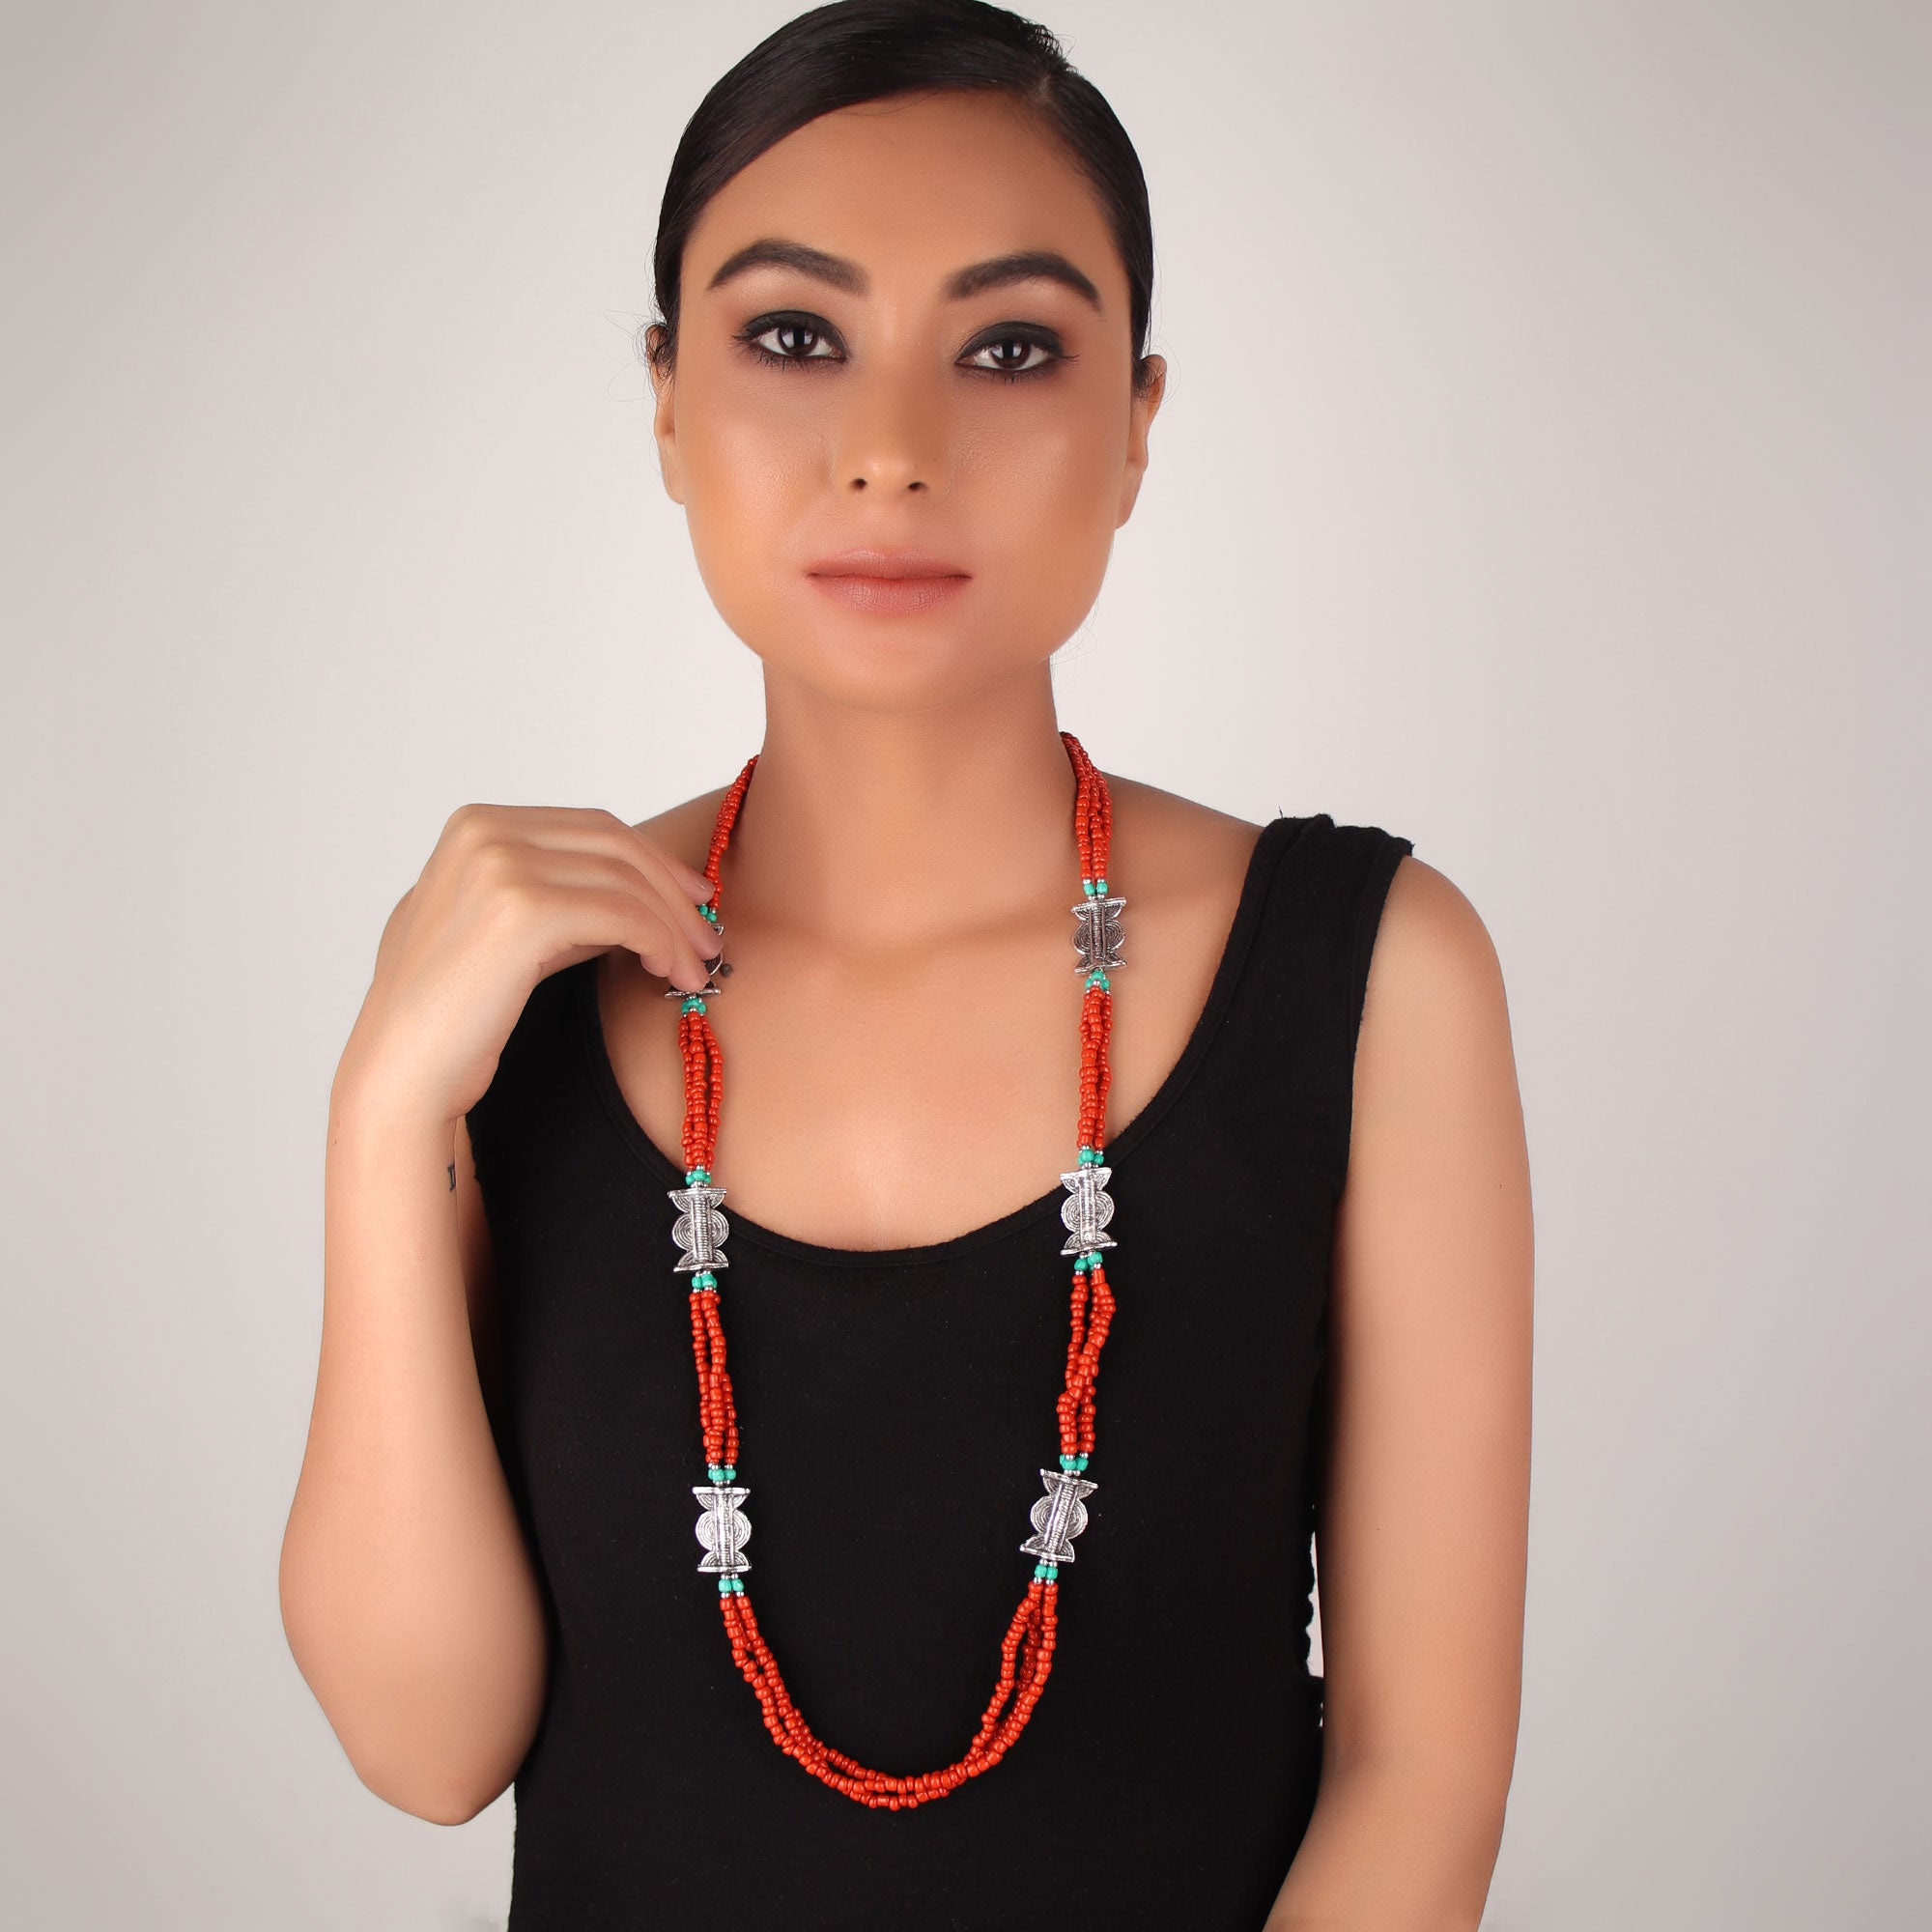 Necklace,The Beaded Lamp Necklace in Red - Cippele Multi Store